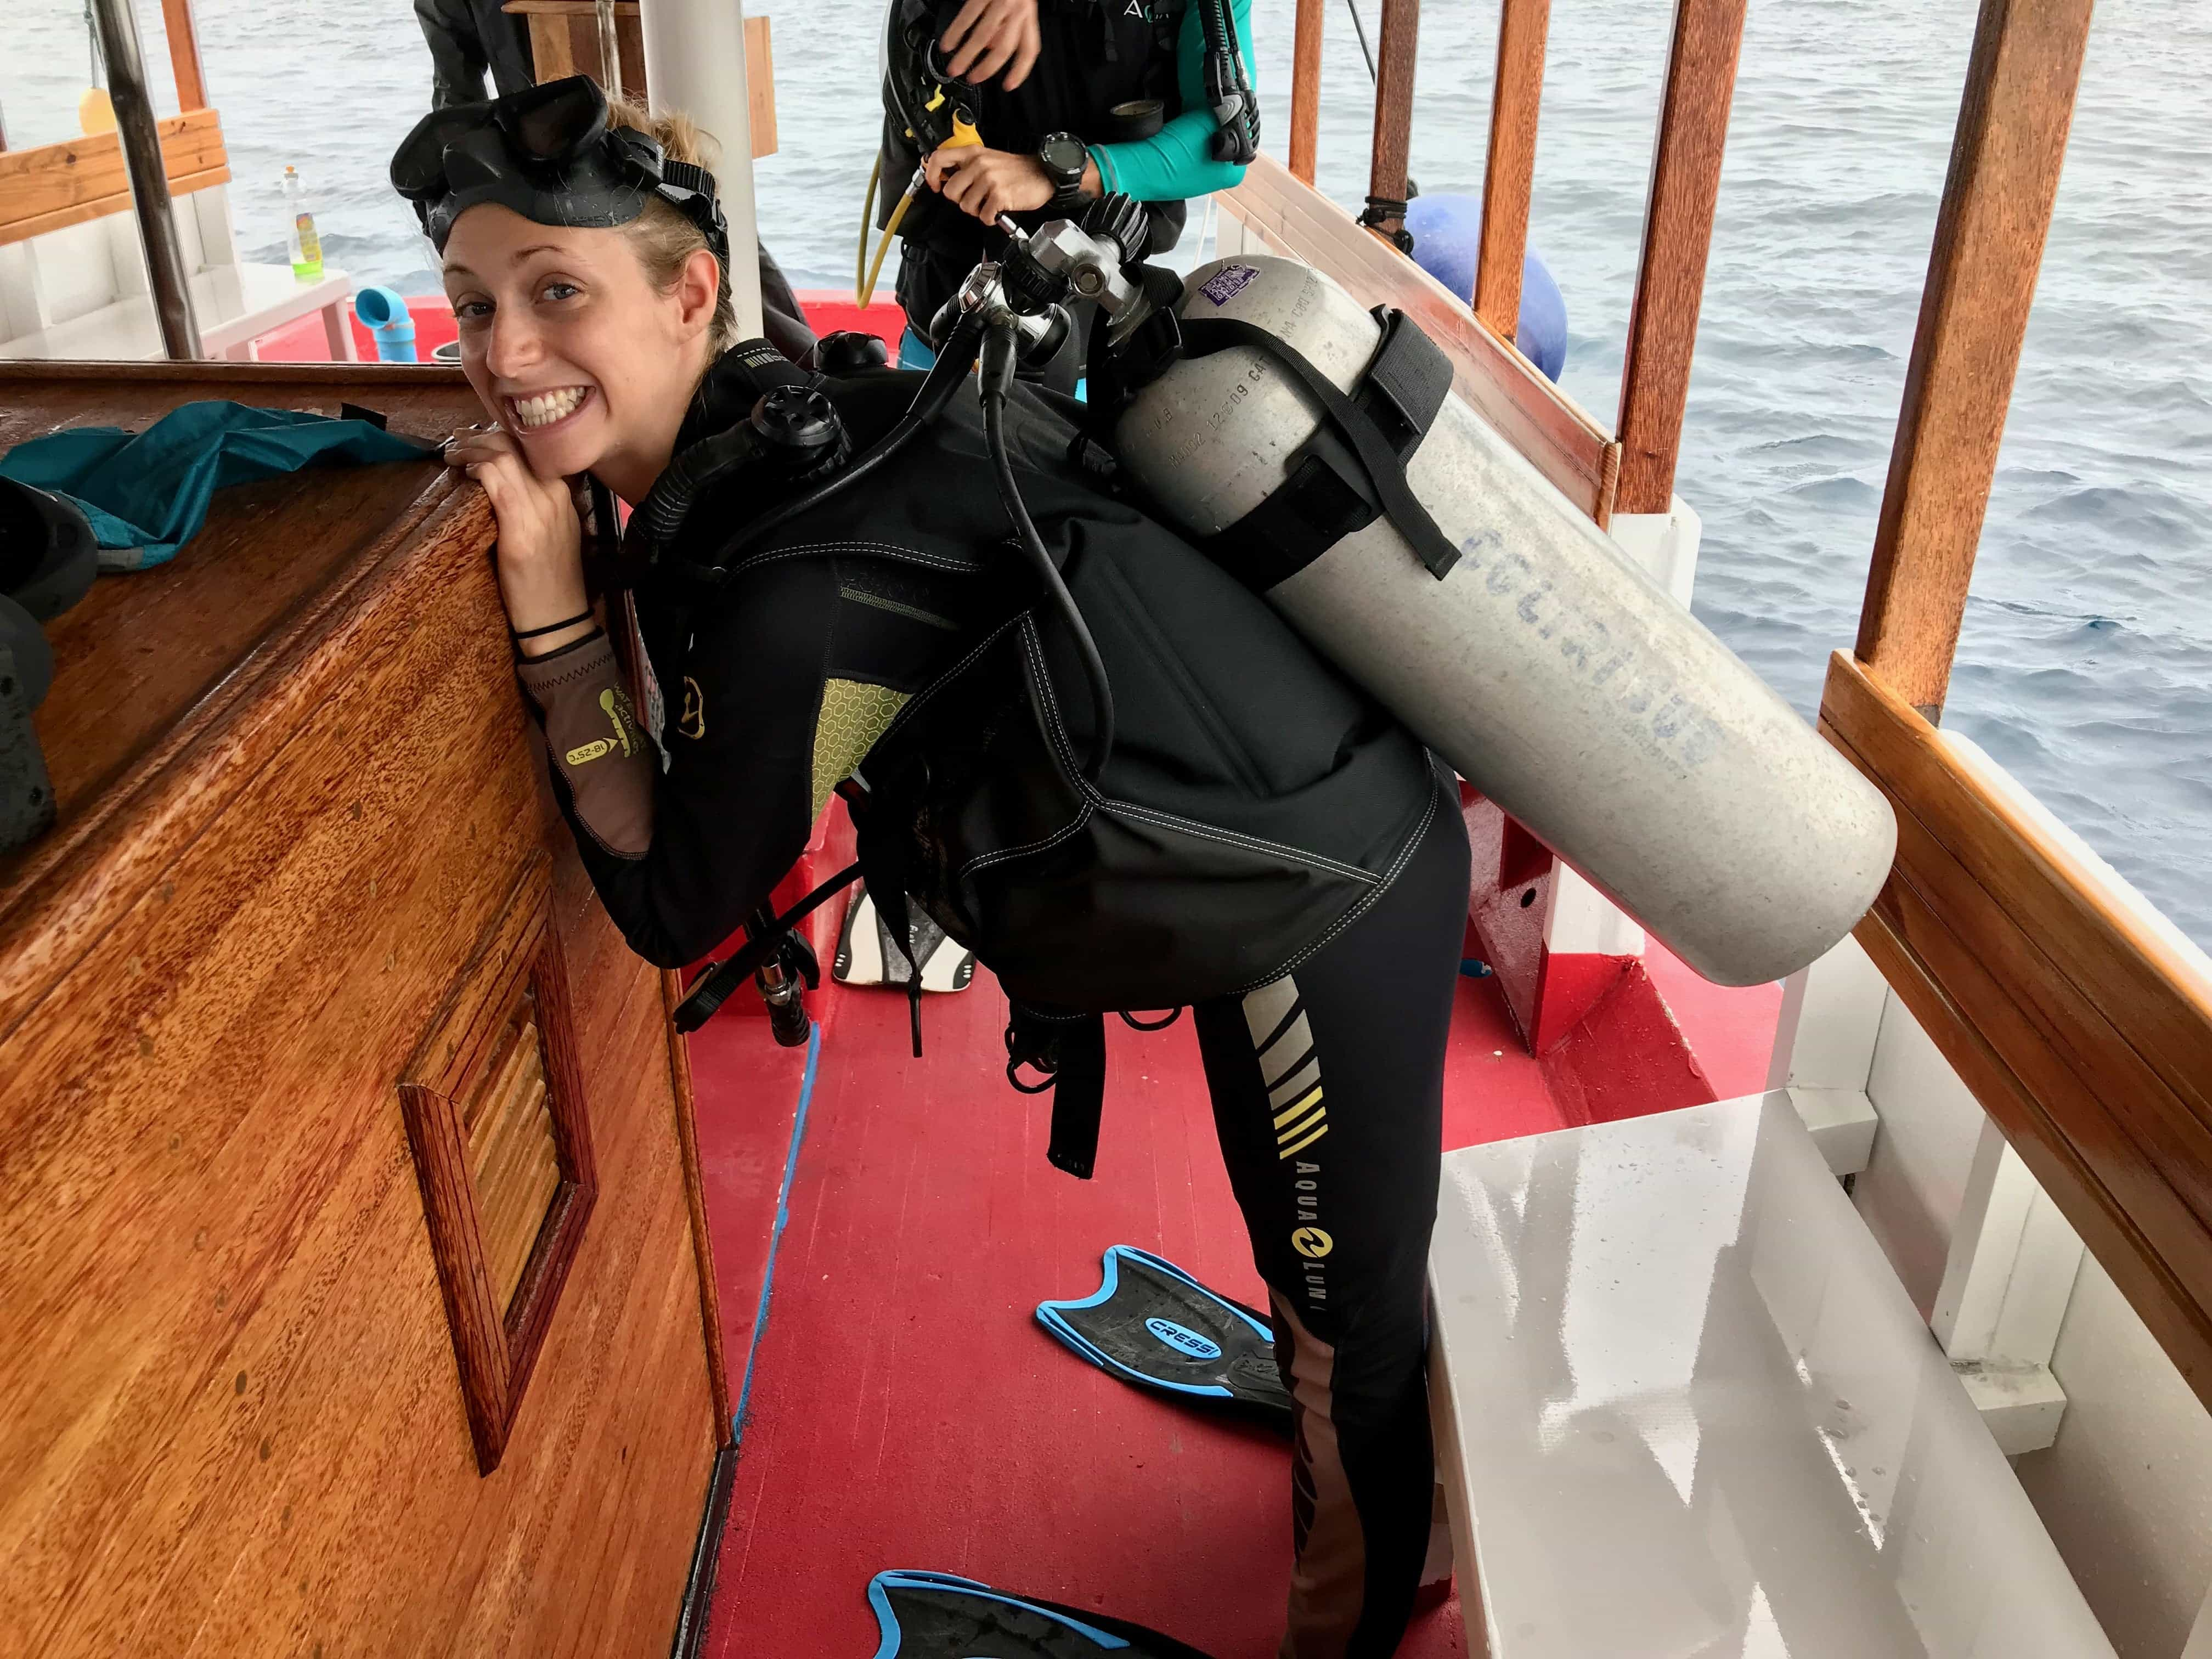 8 Days in the Maldives with Rasdhoo Scuba